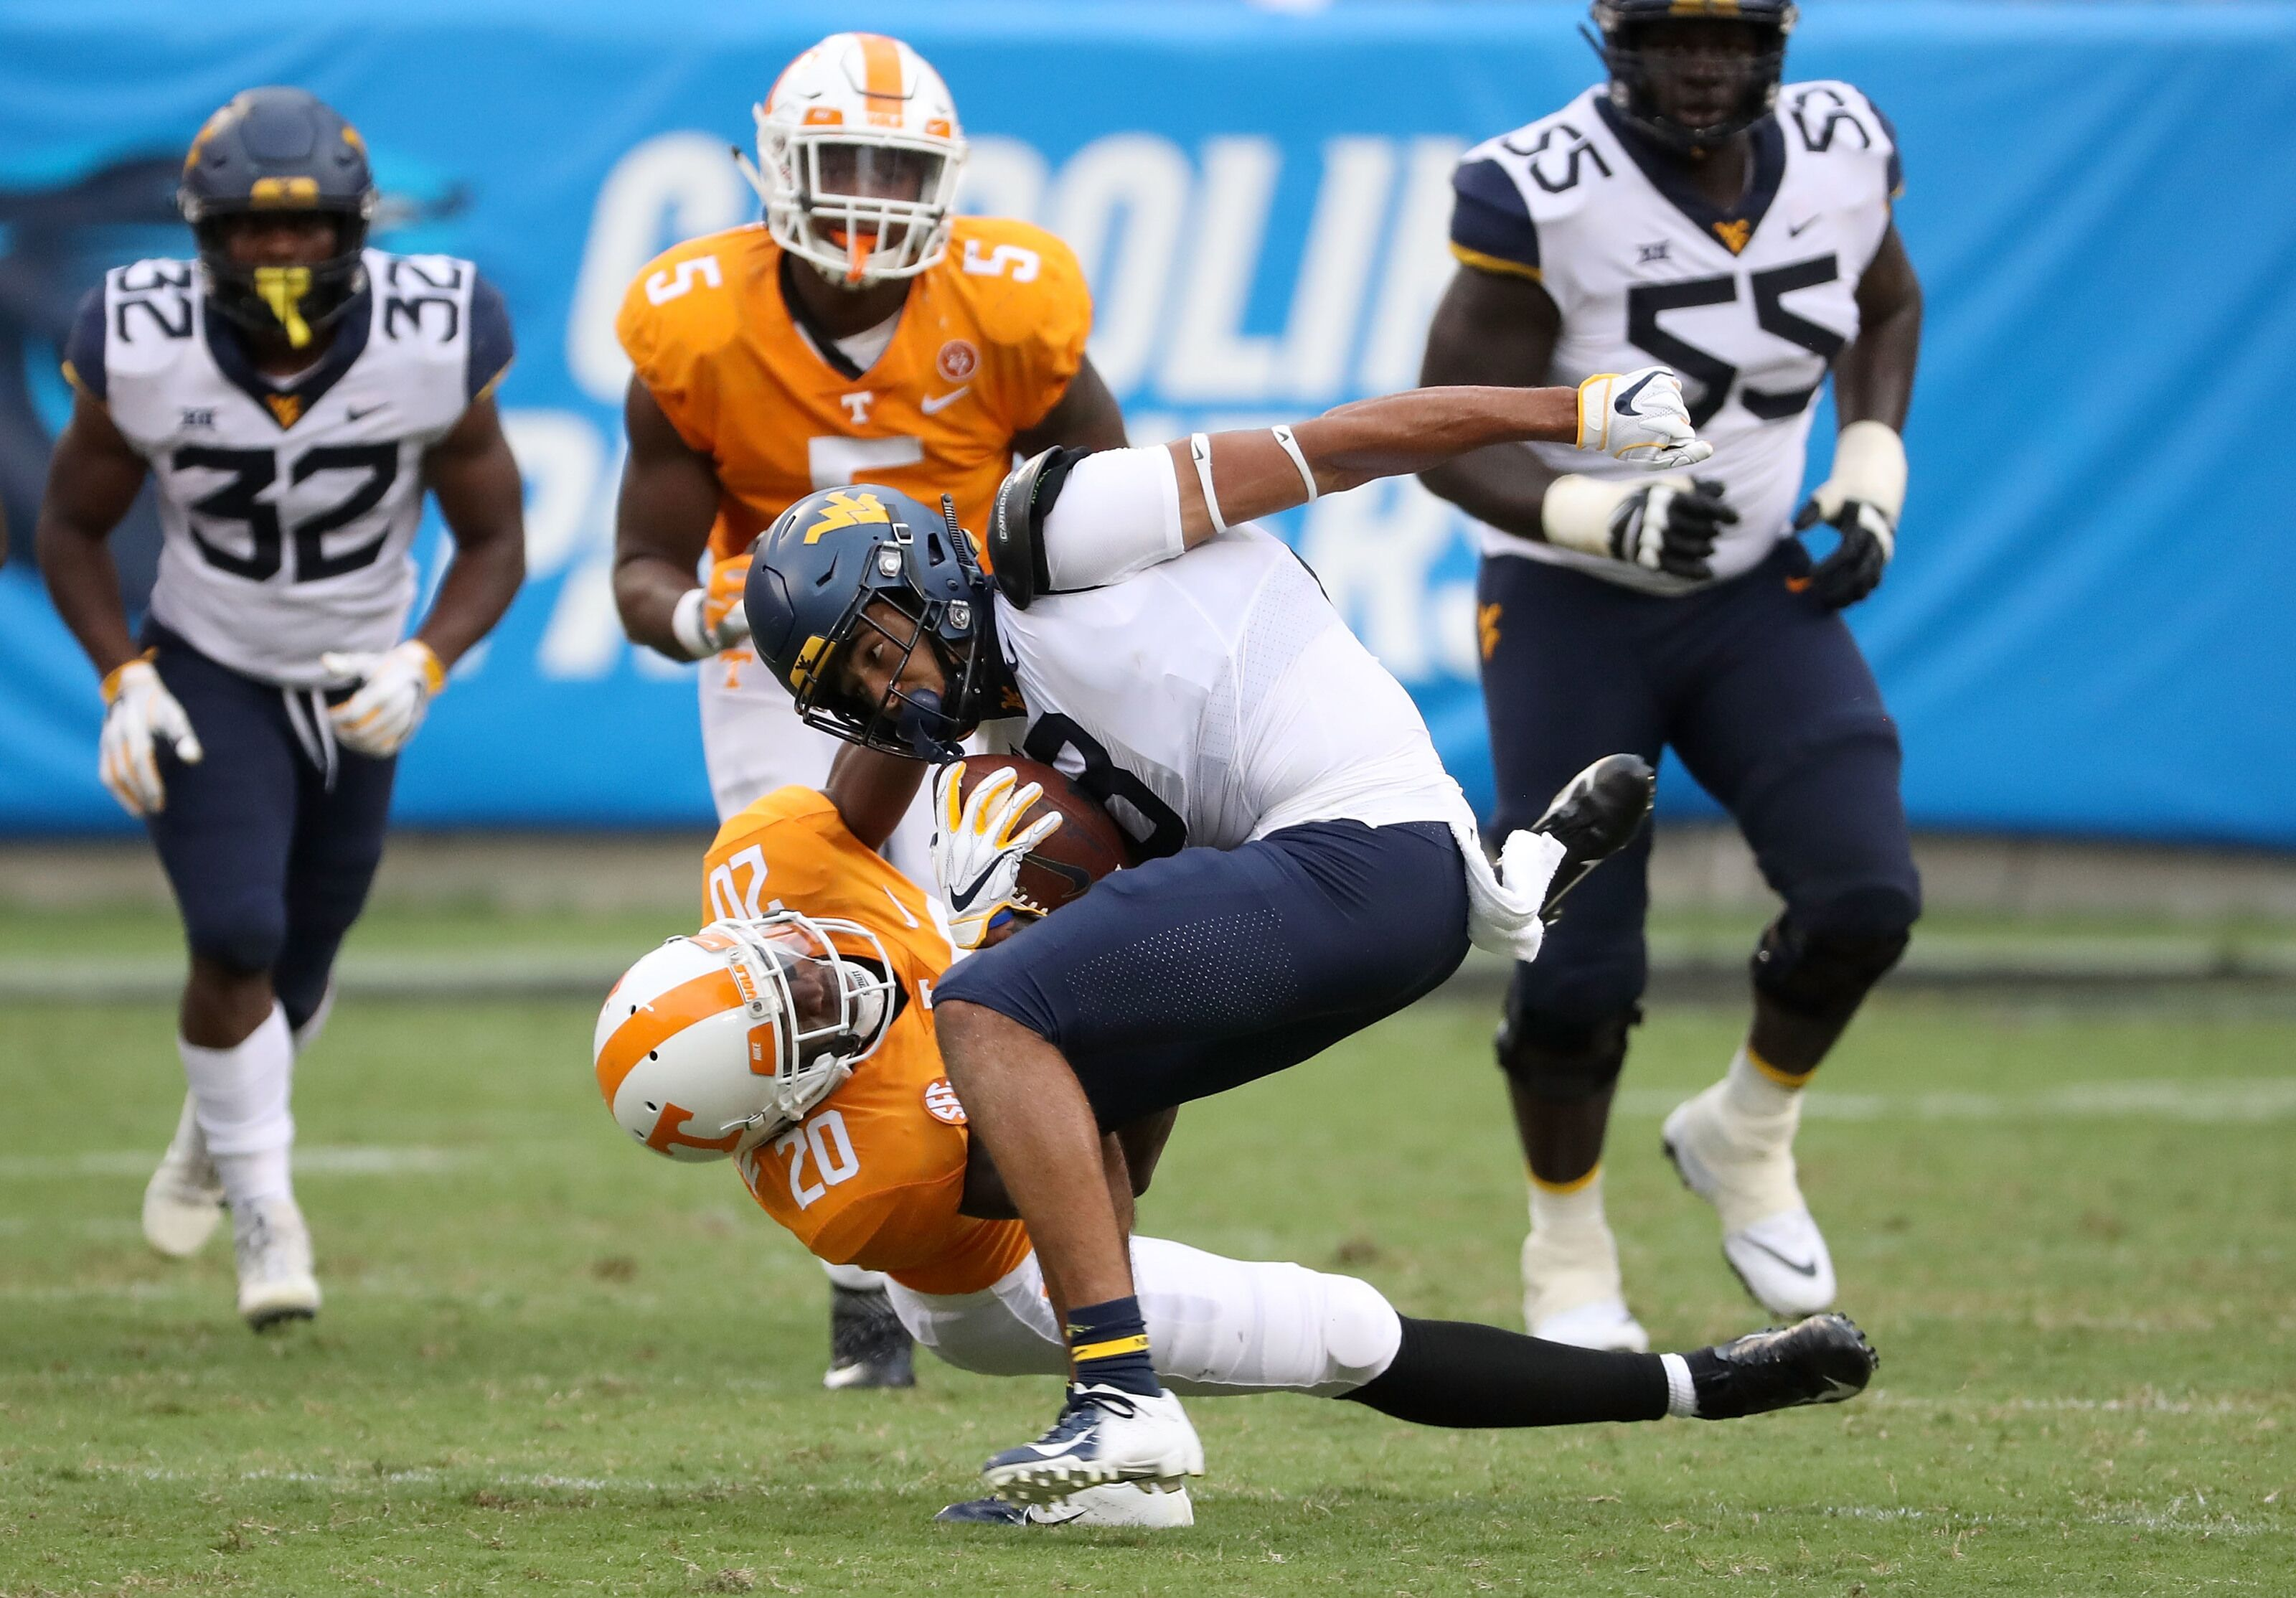 2019 NFL Supplemental Draft prospects fit Chiefs potential needs